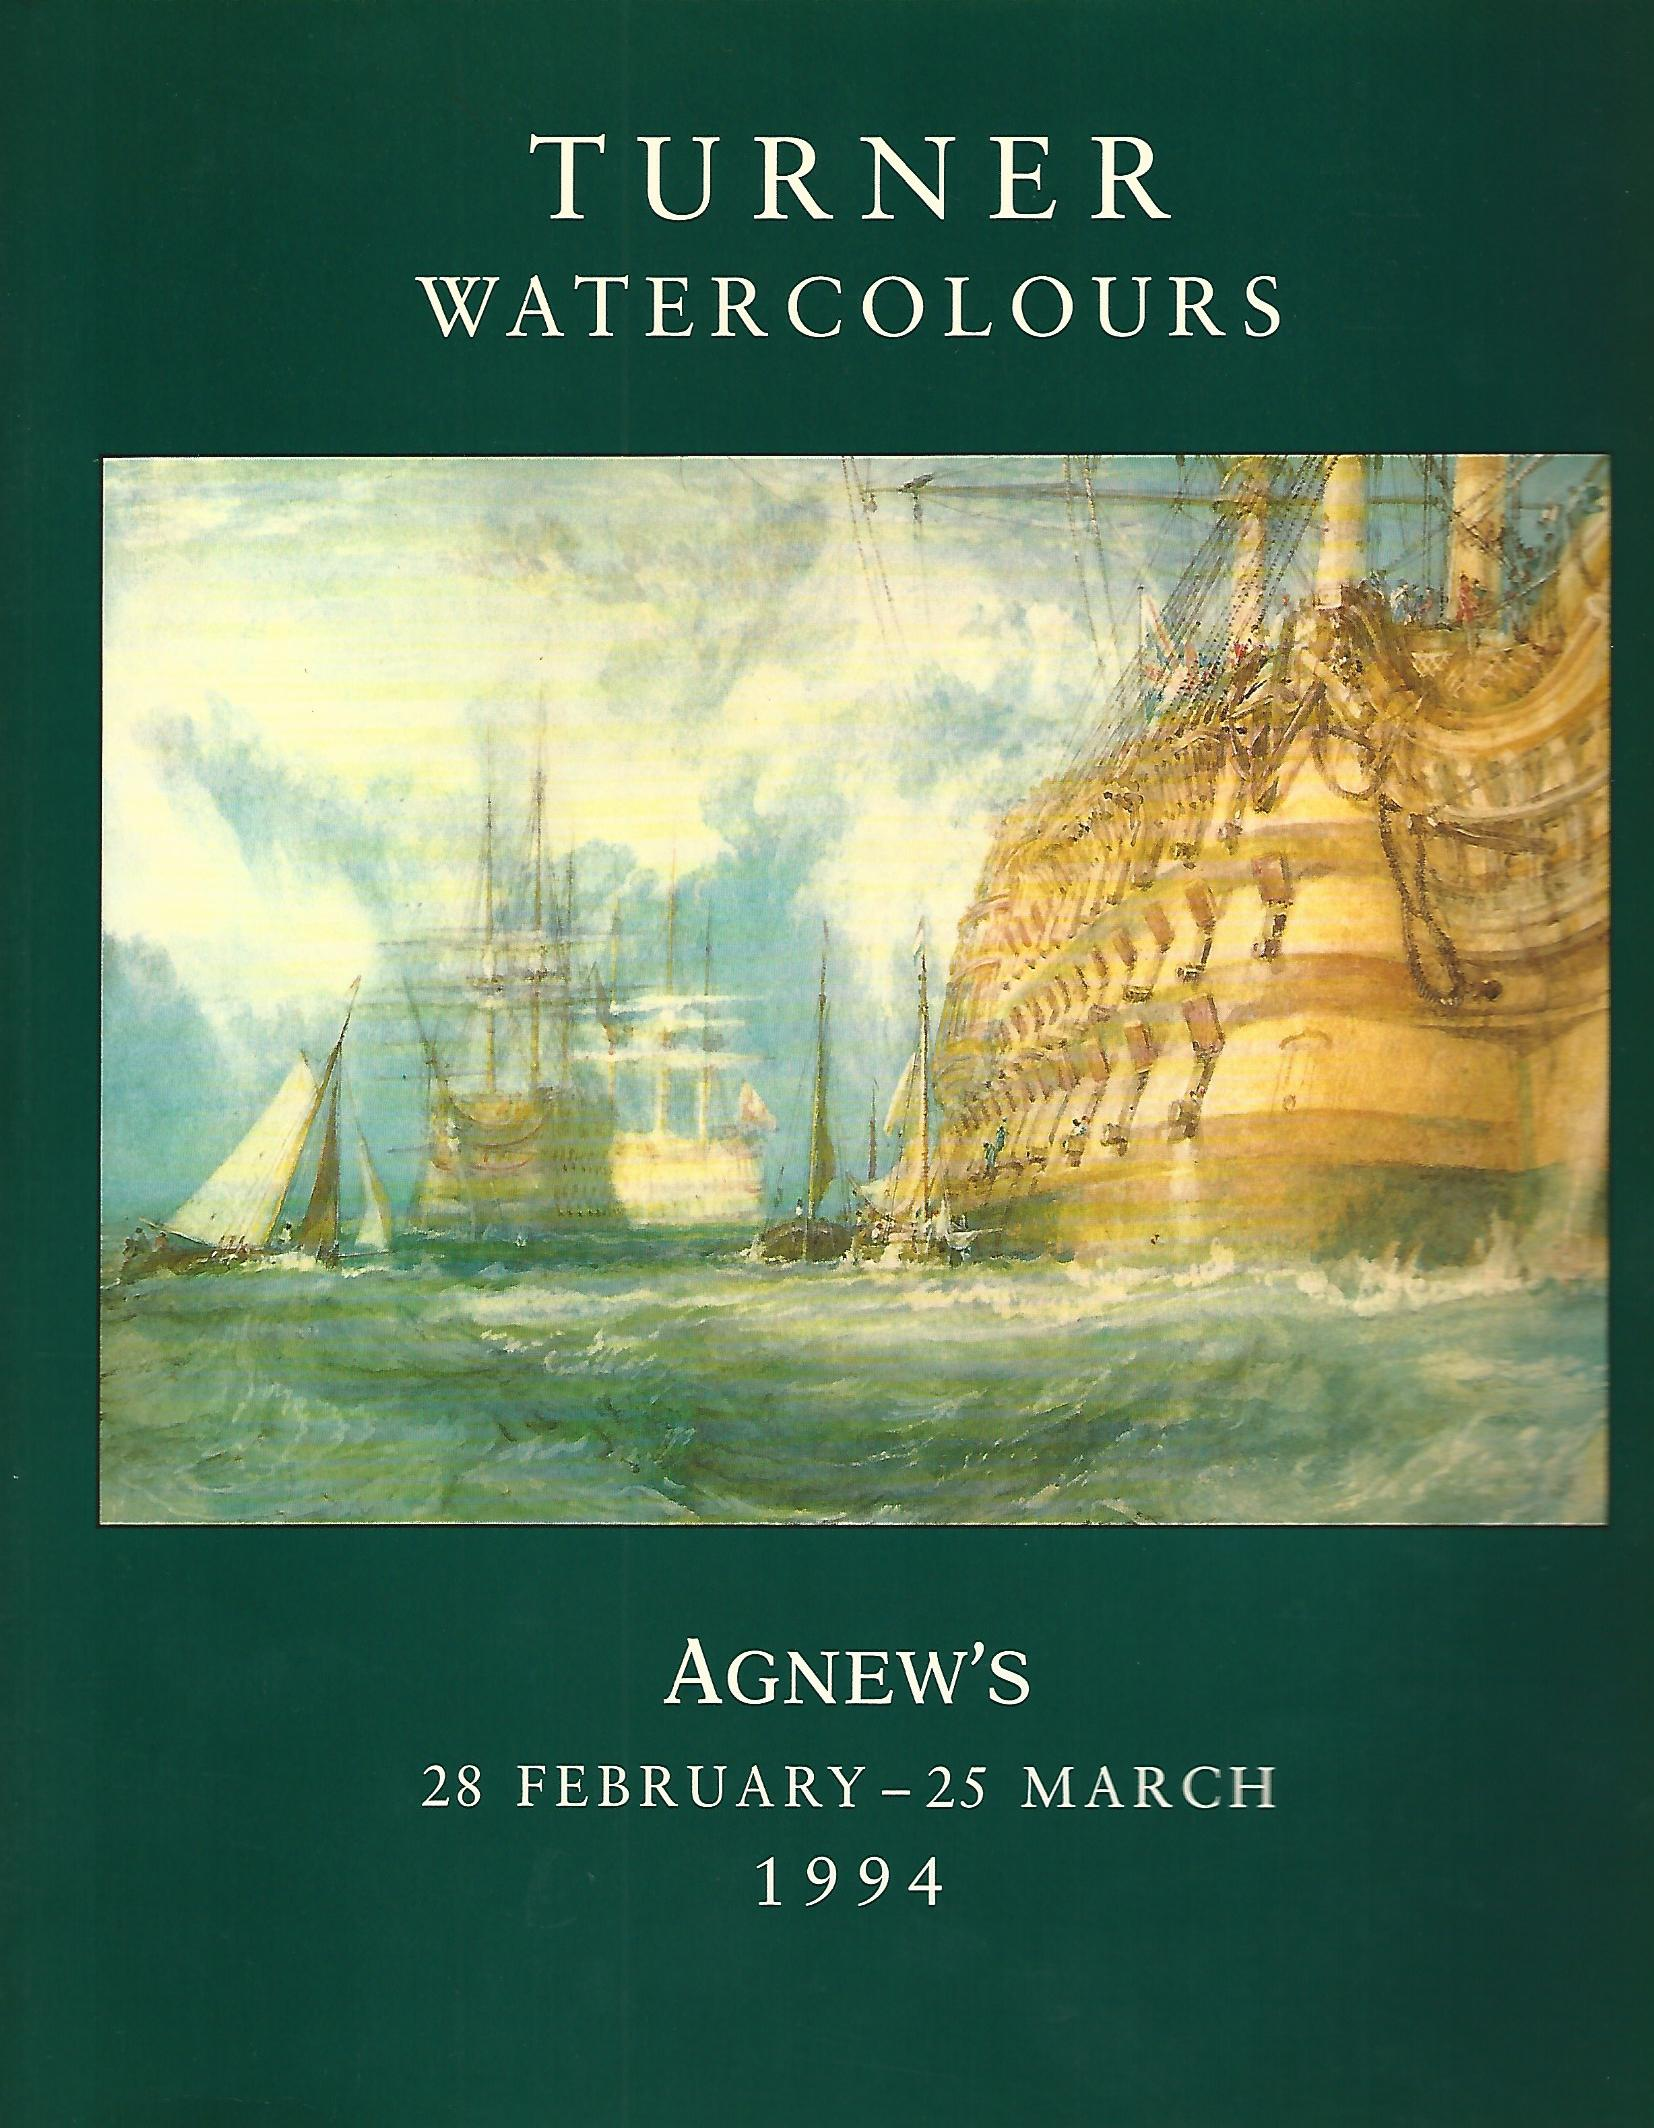 Image for Turner Watercolours, Agnew's 28 February - 25 March 1994: A Loan Exhibition to mark the occaision of Evelyn Joll's retirement from Agnew's at Easter, 1994.